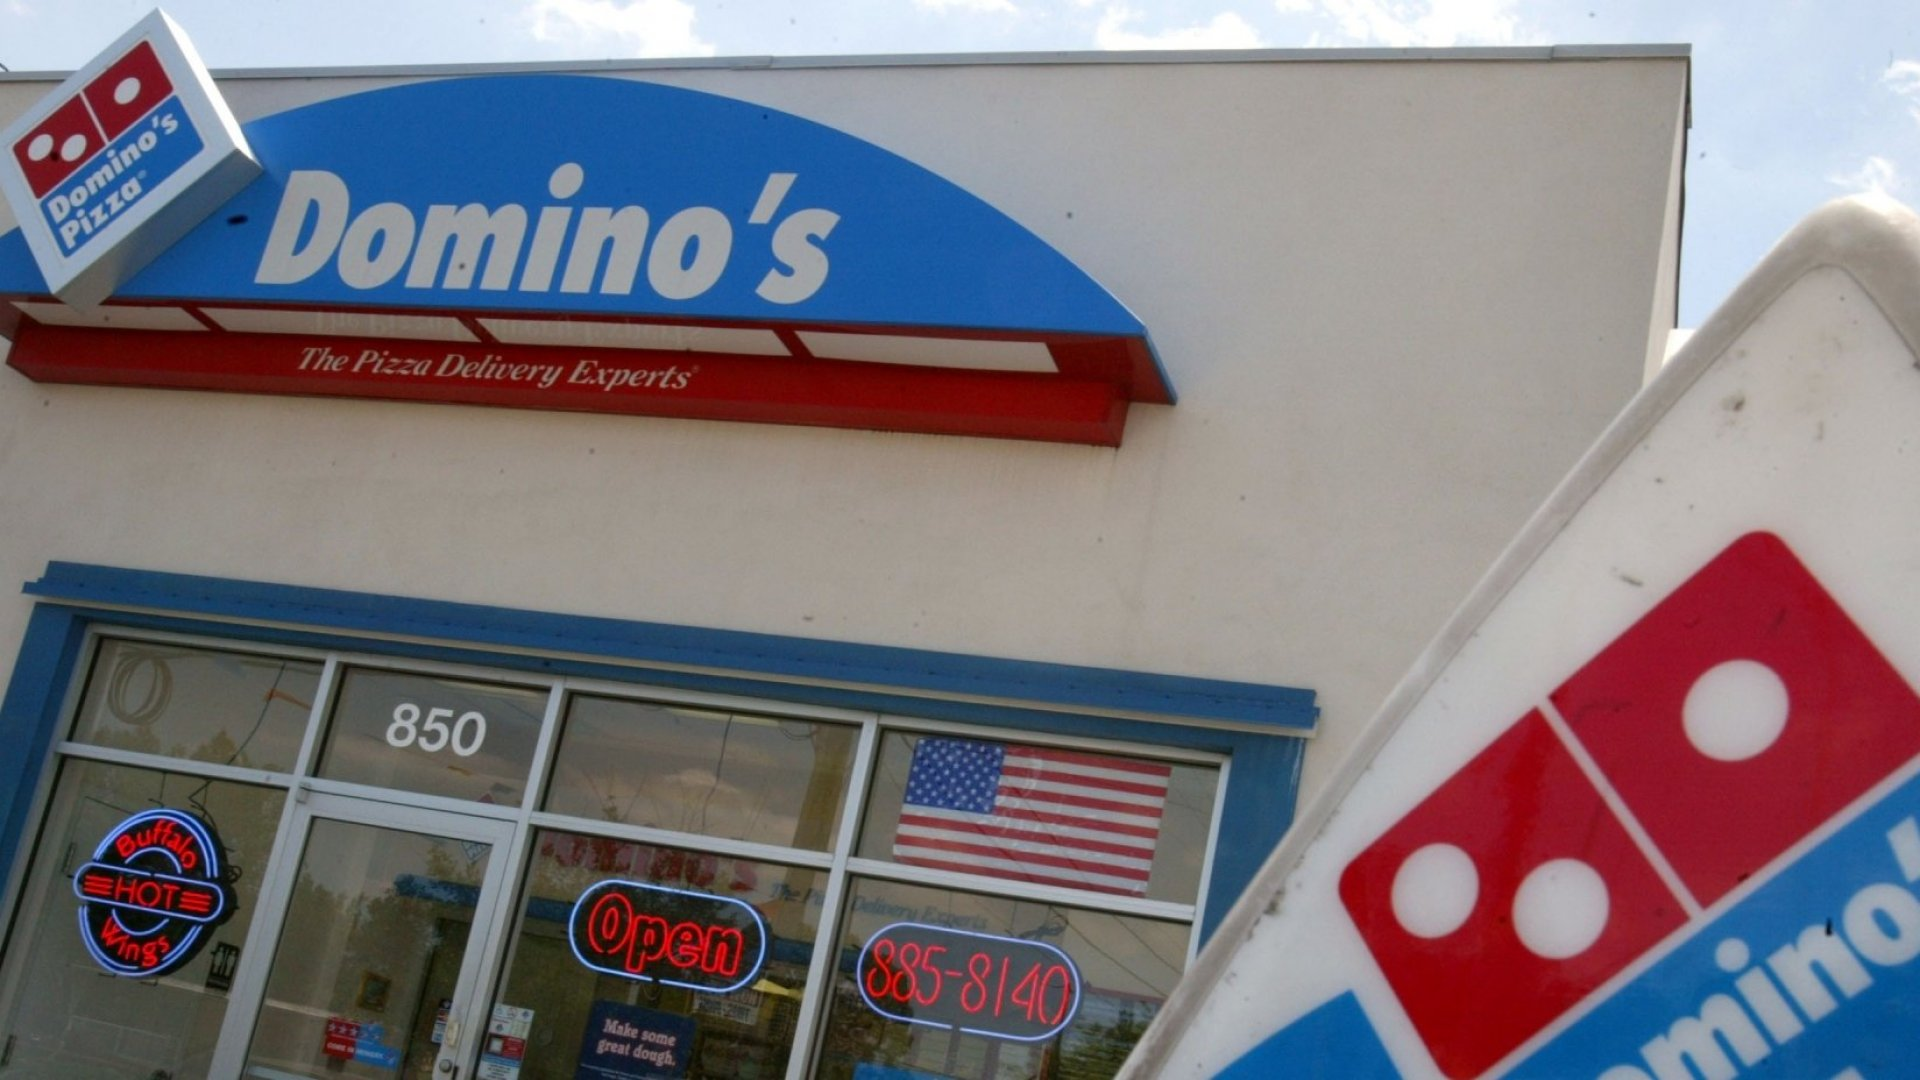 Domino's Just Announced a New Loyalty Program, and It's Completely Insane. (Or Maybe Brilliant, Hard to Tell. Let's Do the Math)